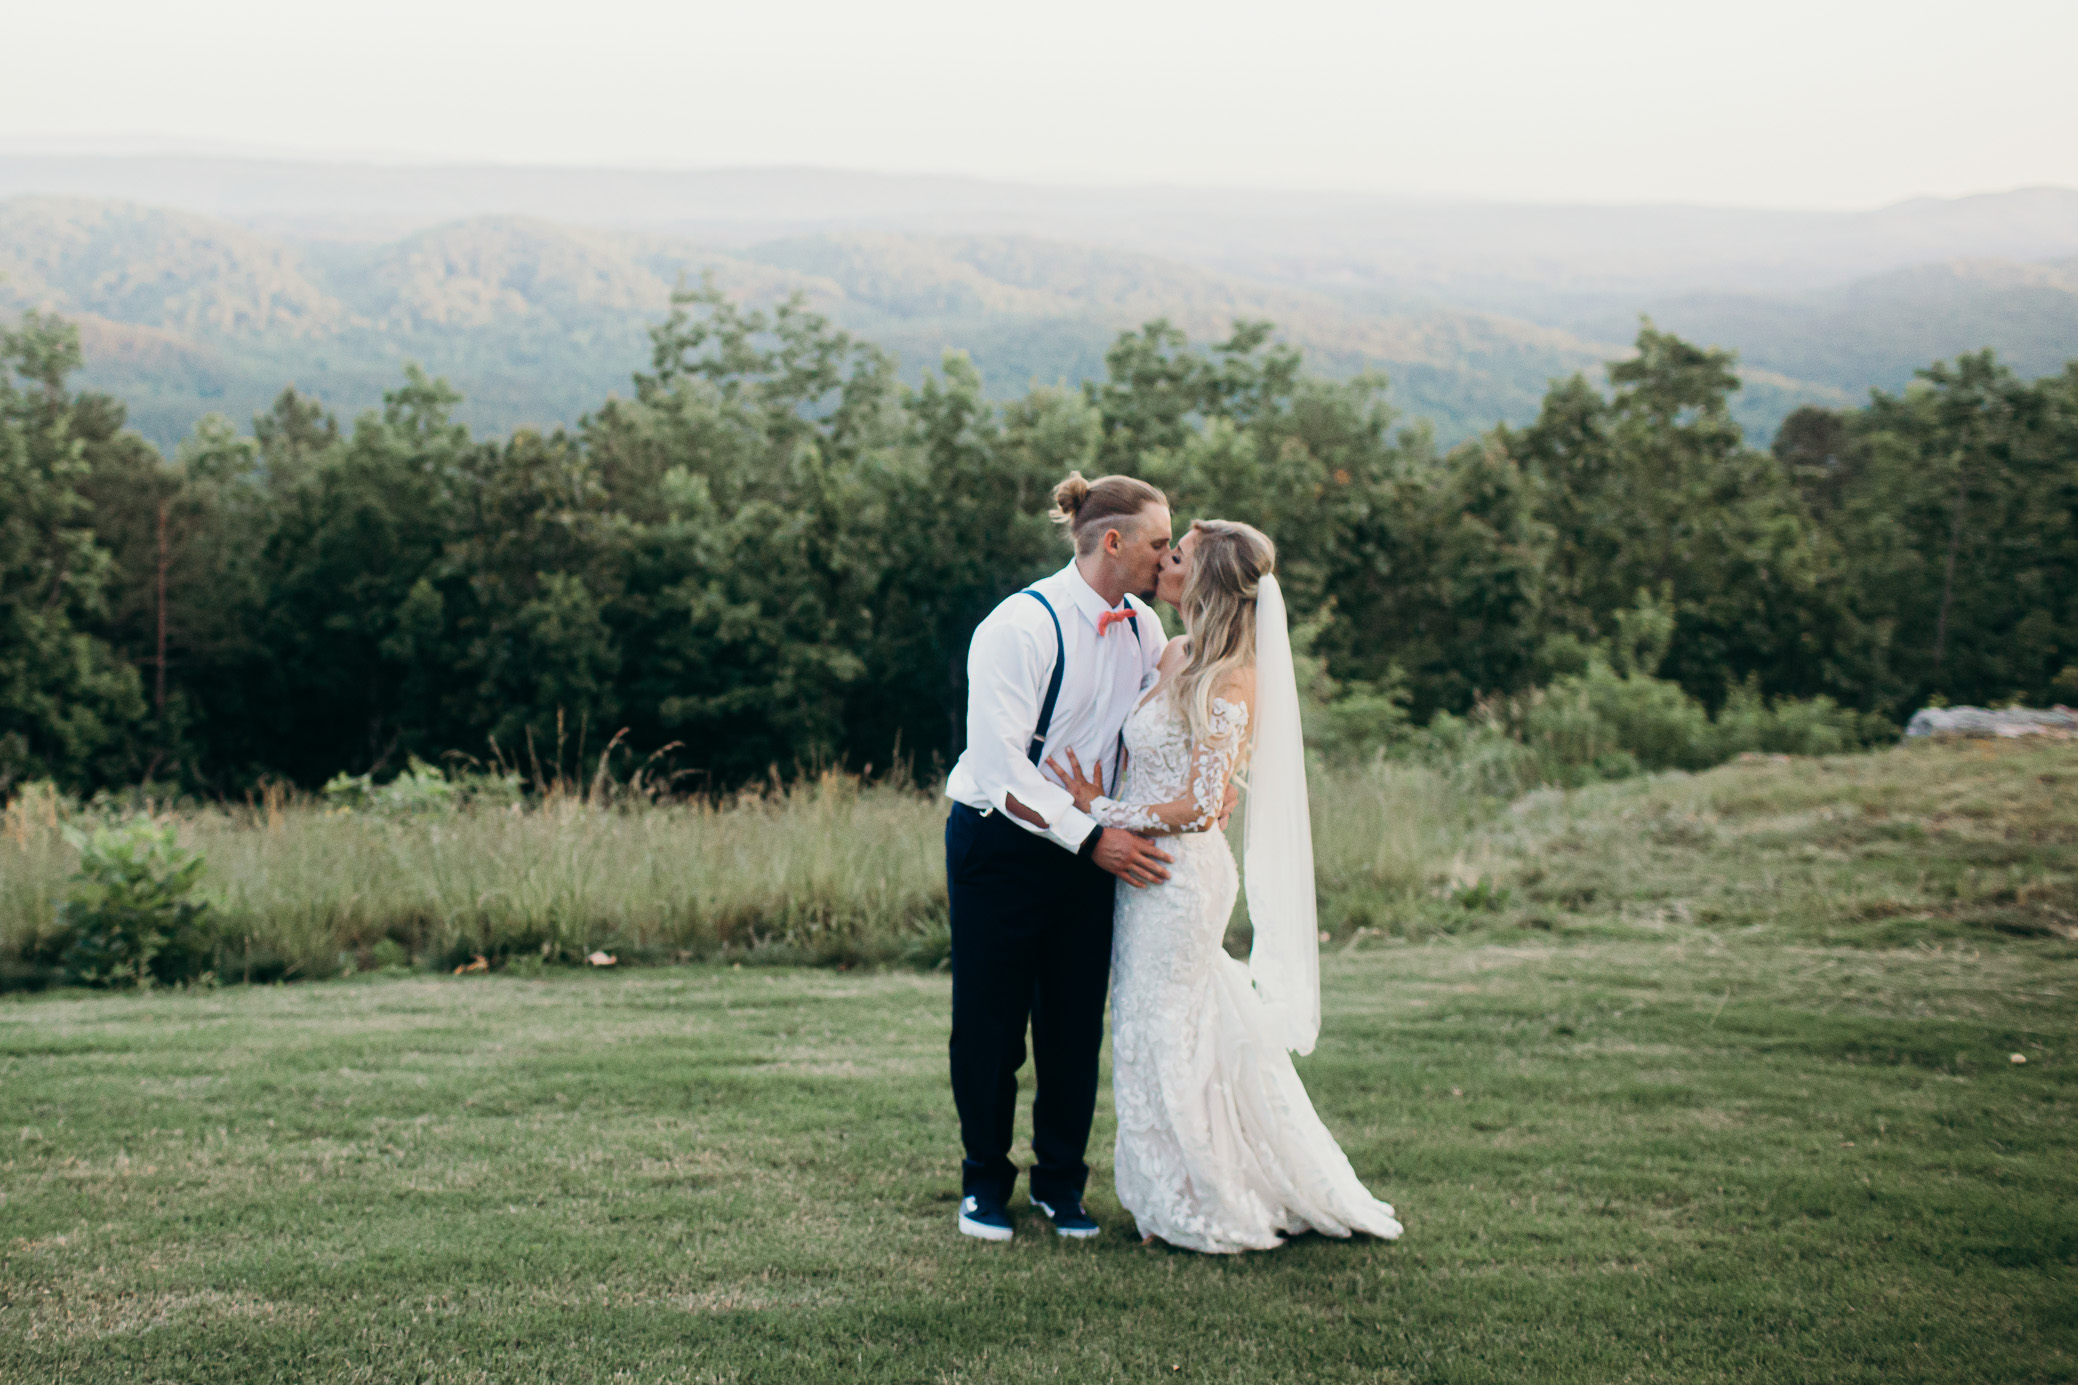 Wedding photography and elopement photography pricing information in Idaho - including places such as Boise, Sun Valley, Meridian, Nampa, Idaho Falls, Pocatello, and many more.